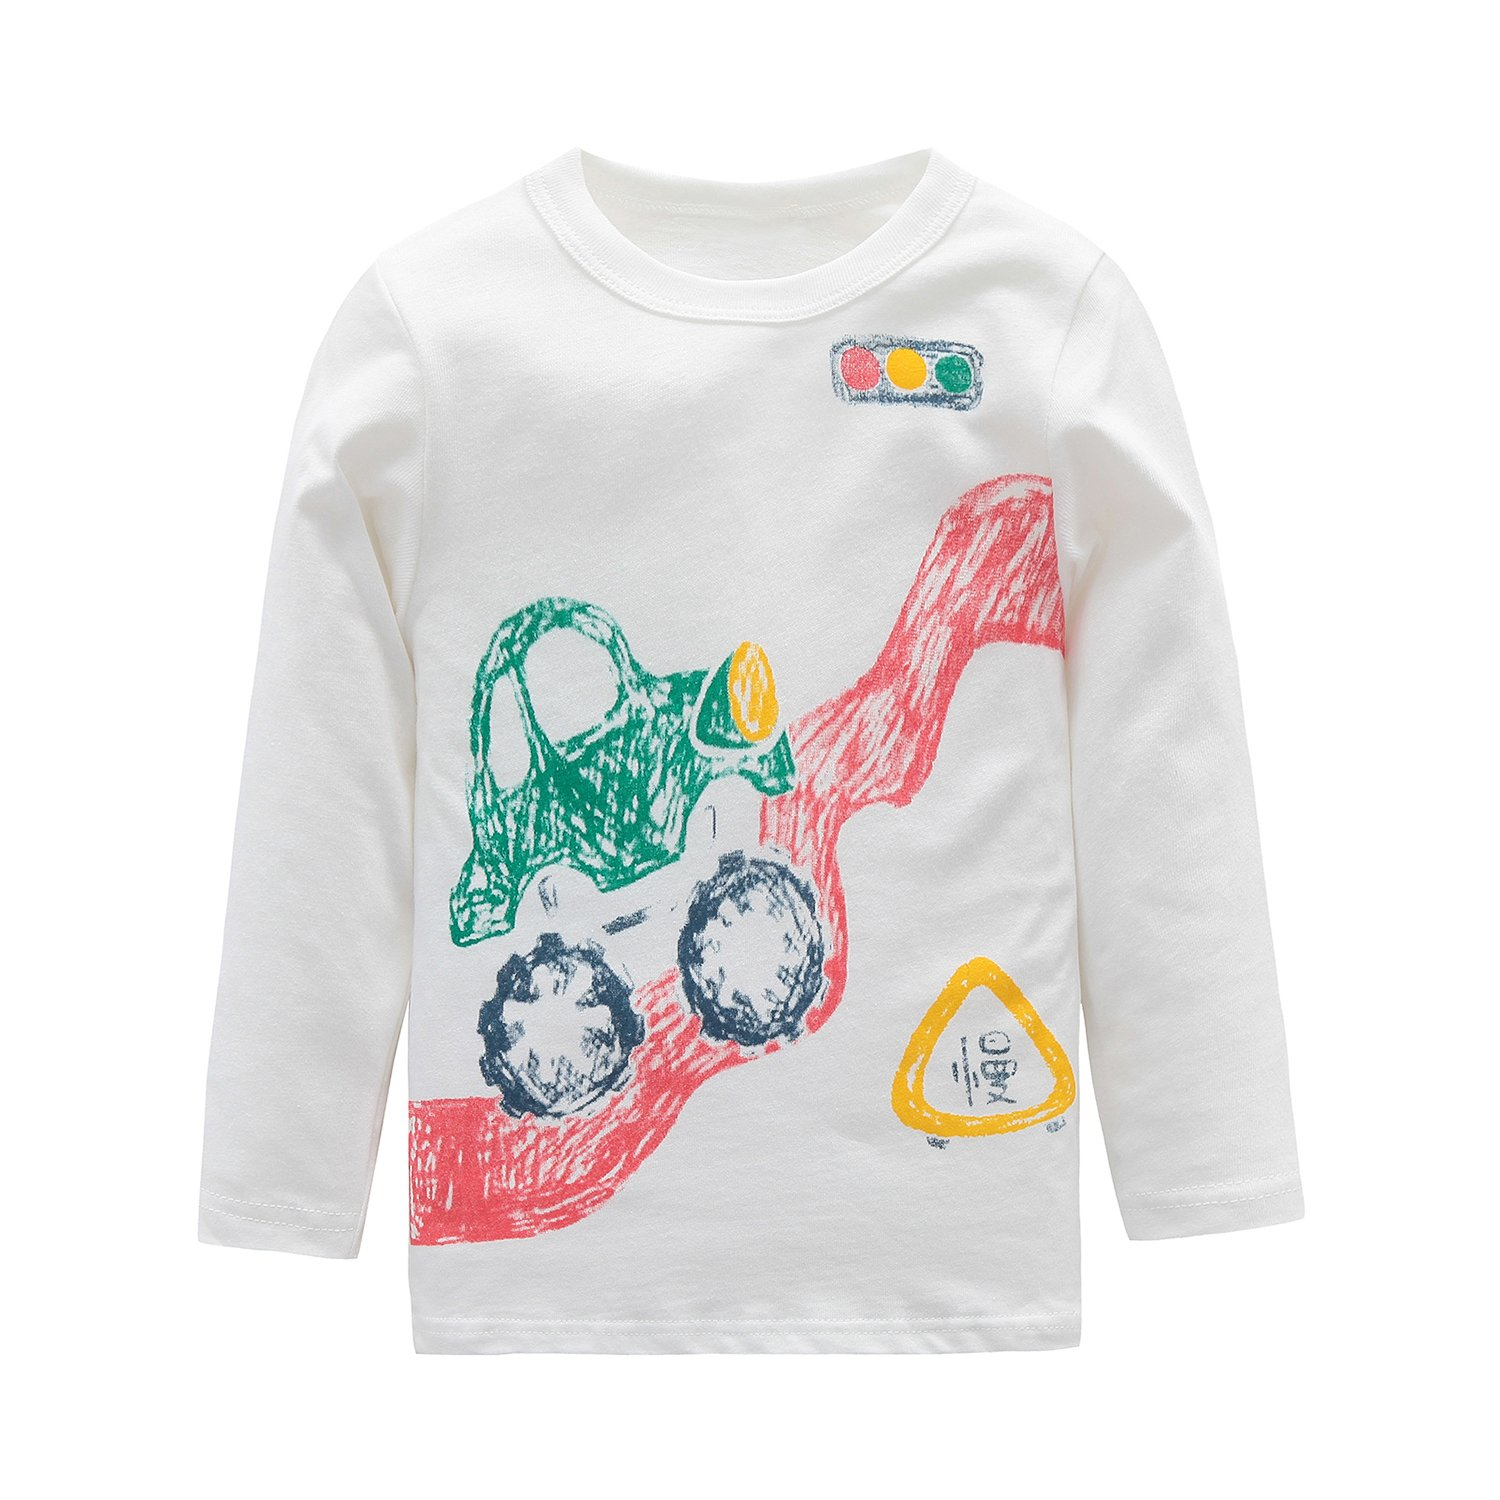 HowJoJo Boys Cotton Long Sleeve T-Shirts Cars Tops Tees White 5T